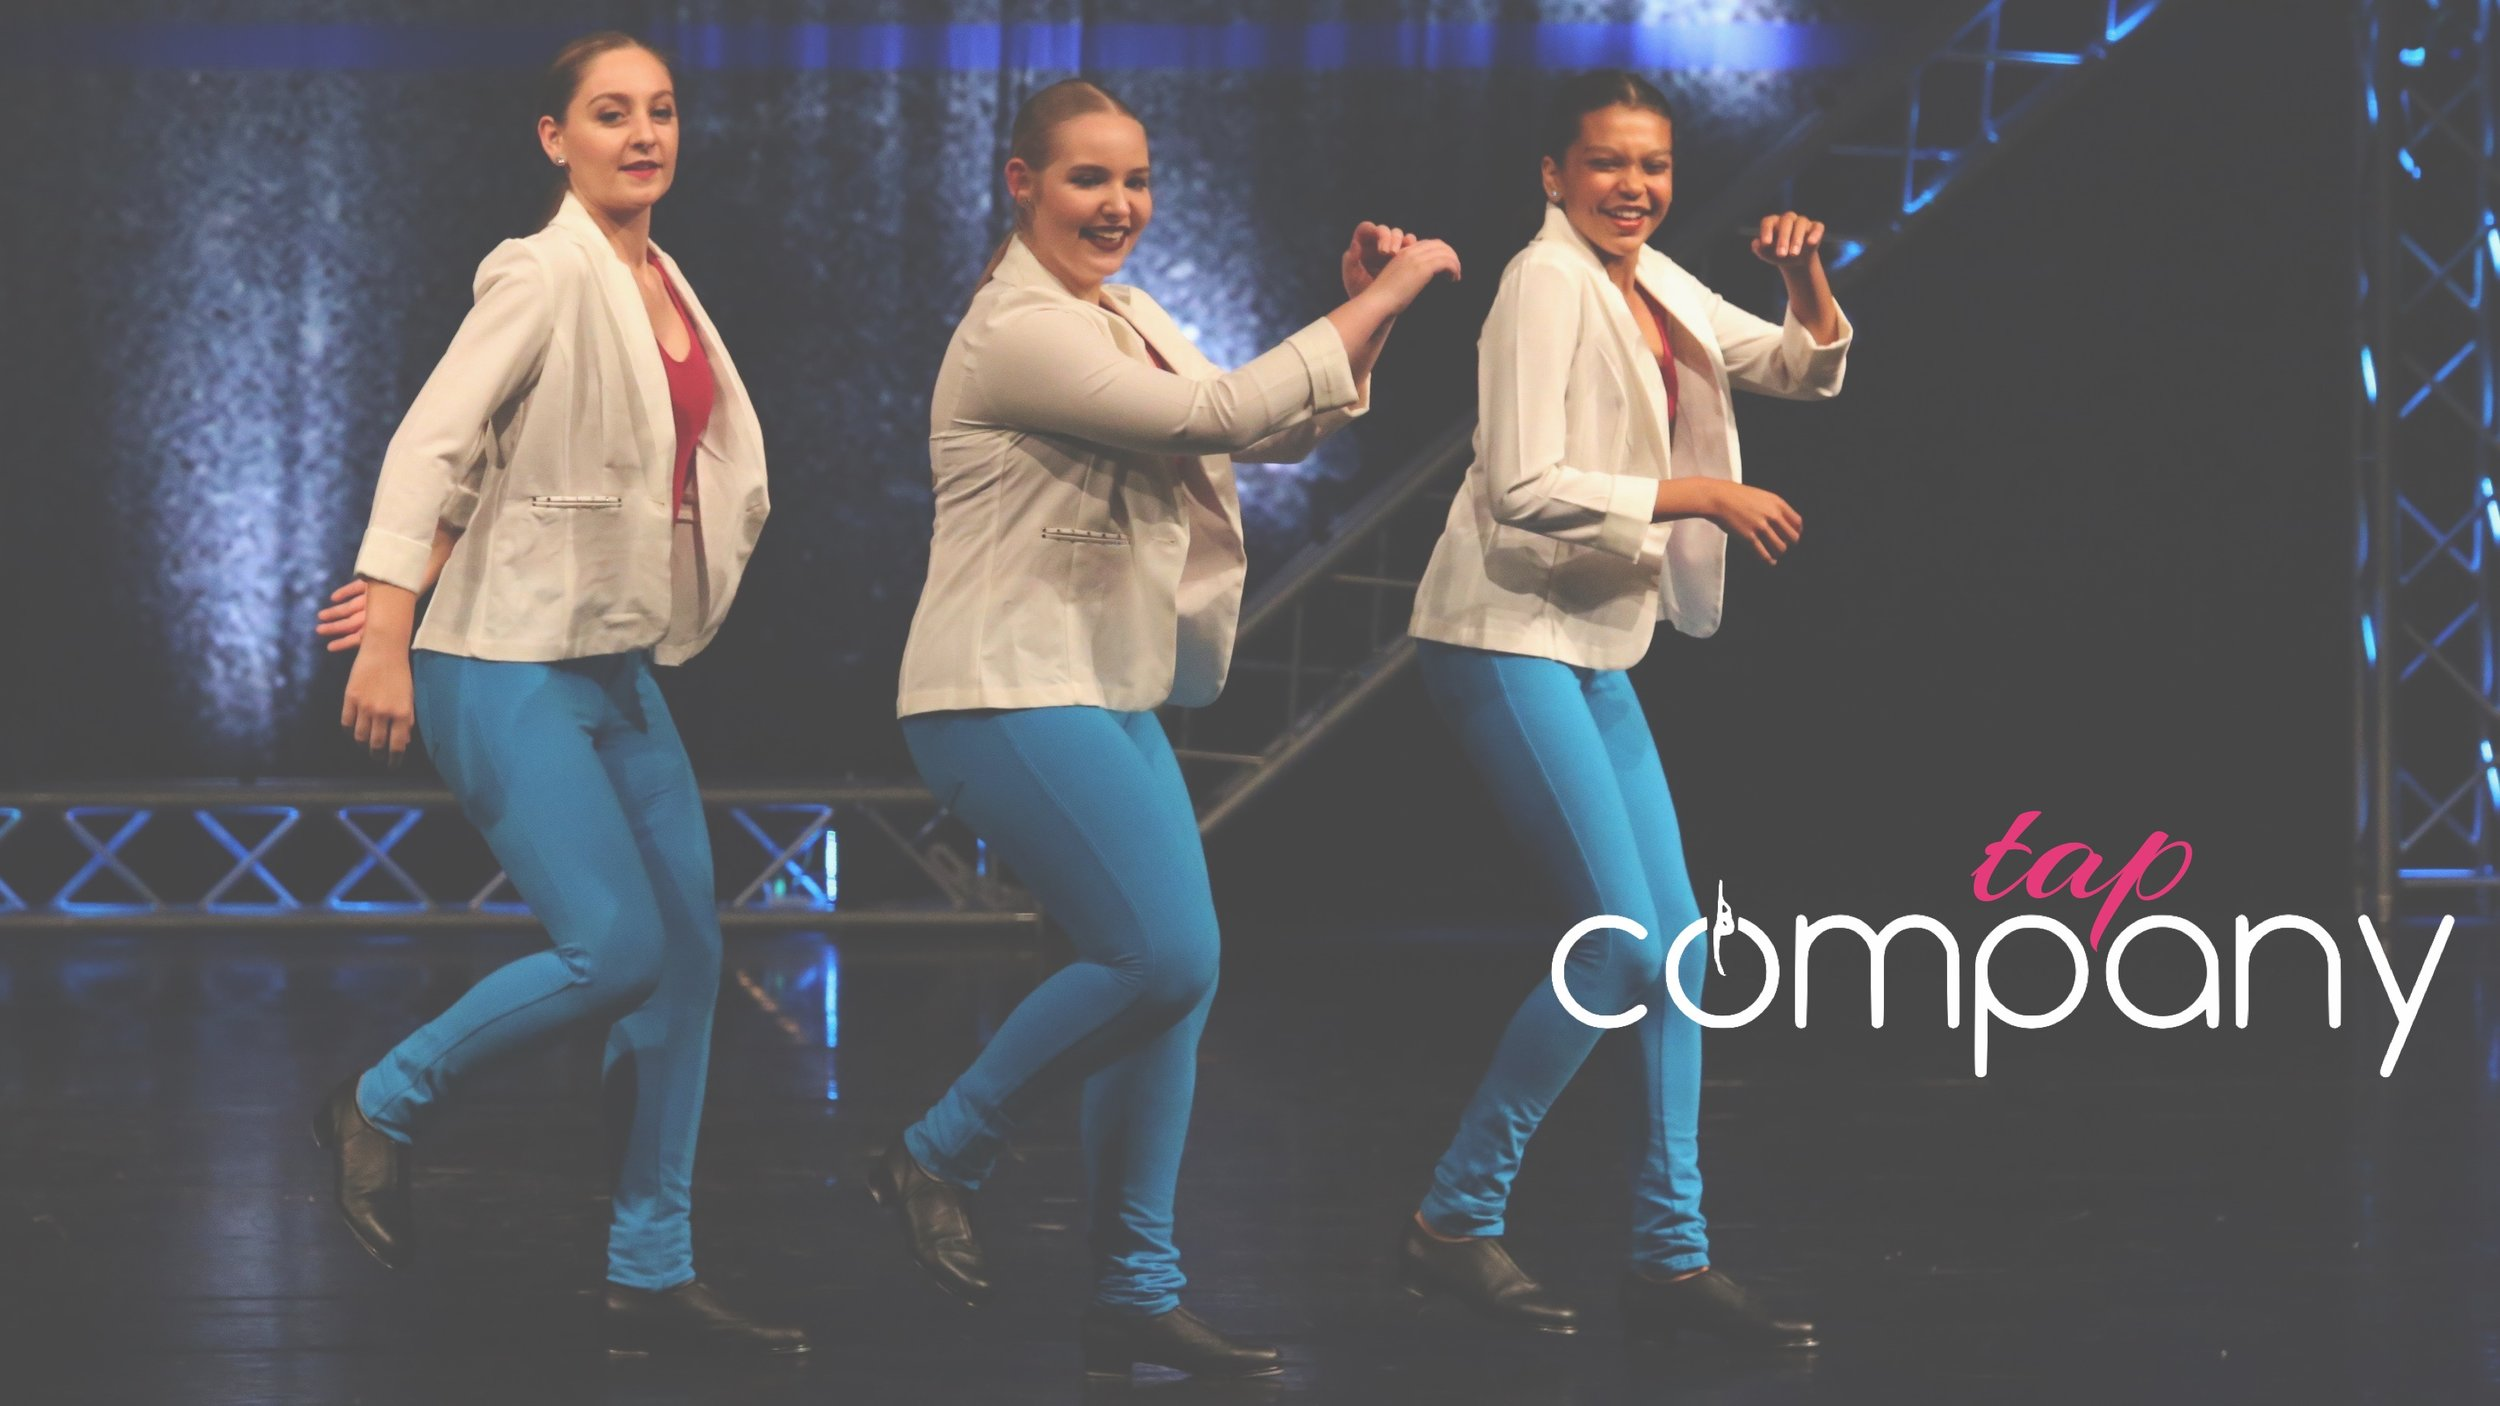 Groove-Dance-Competition_04_22_2017_822317.jpg